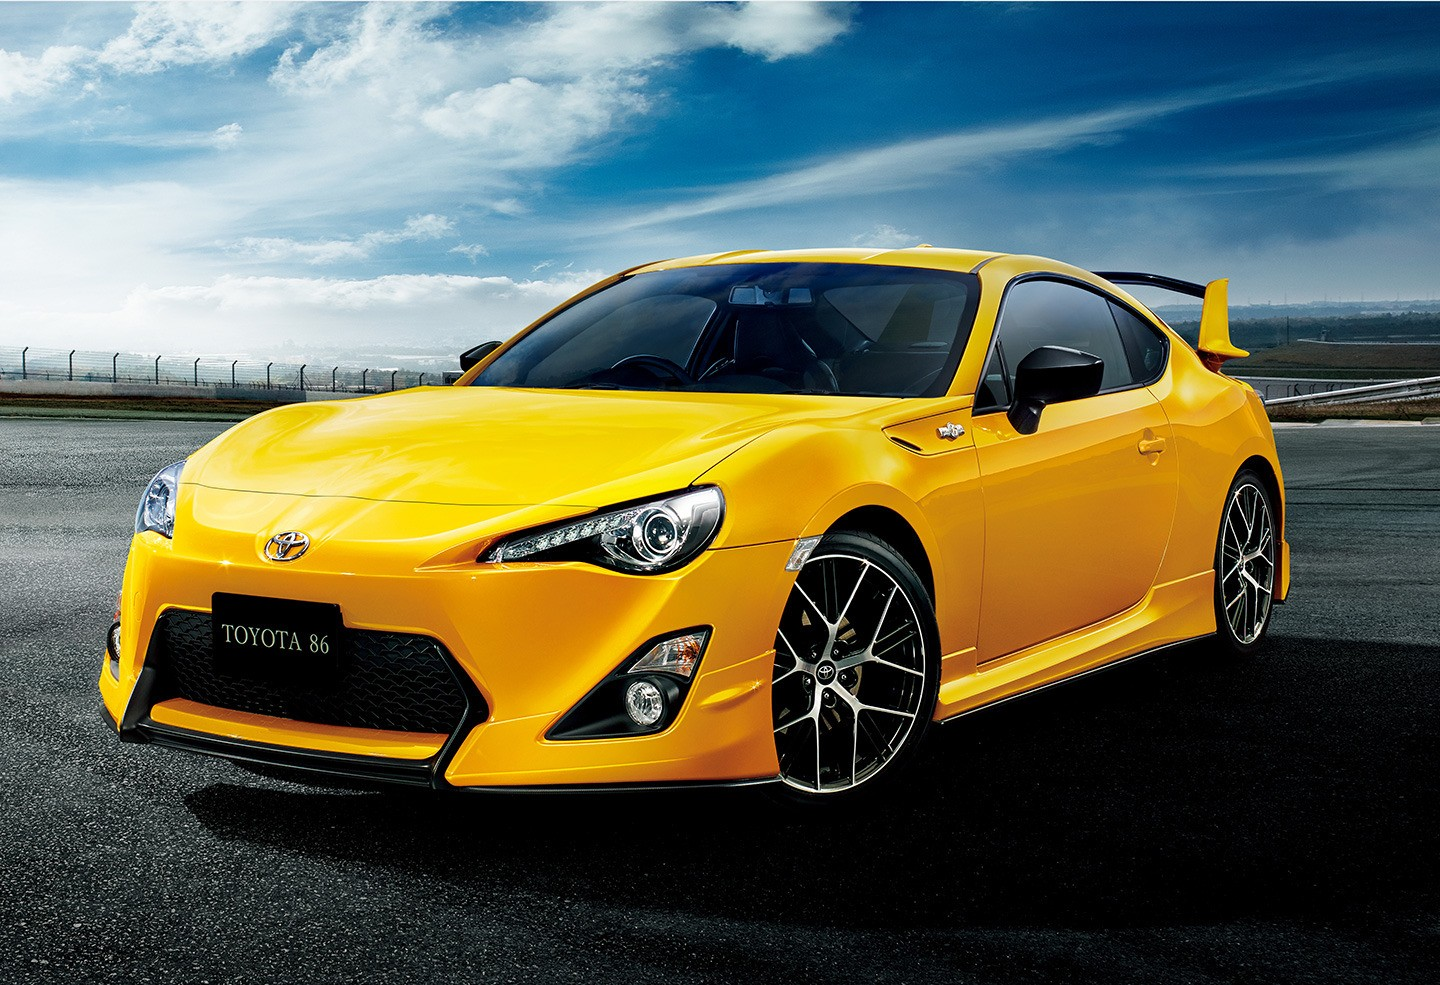 toyota 86 gt yellow edition limited japanese spoiler rear jdm autoevolution s1